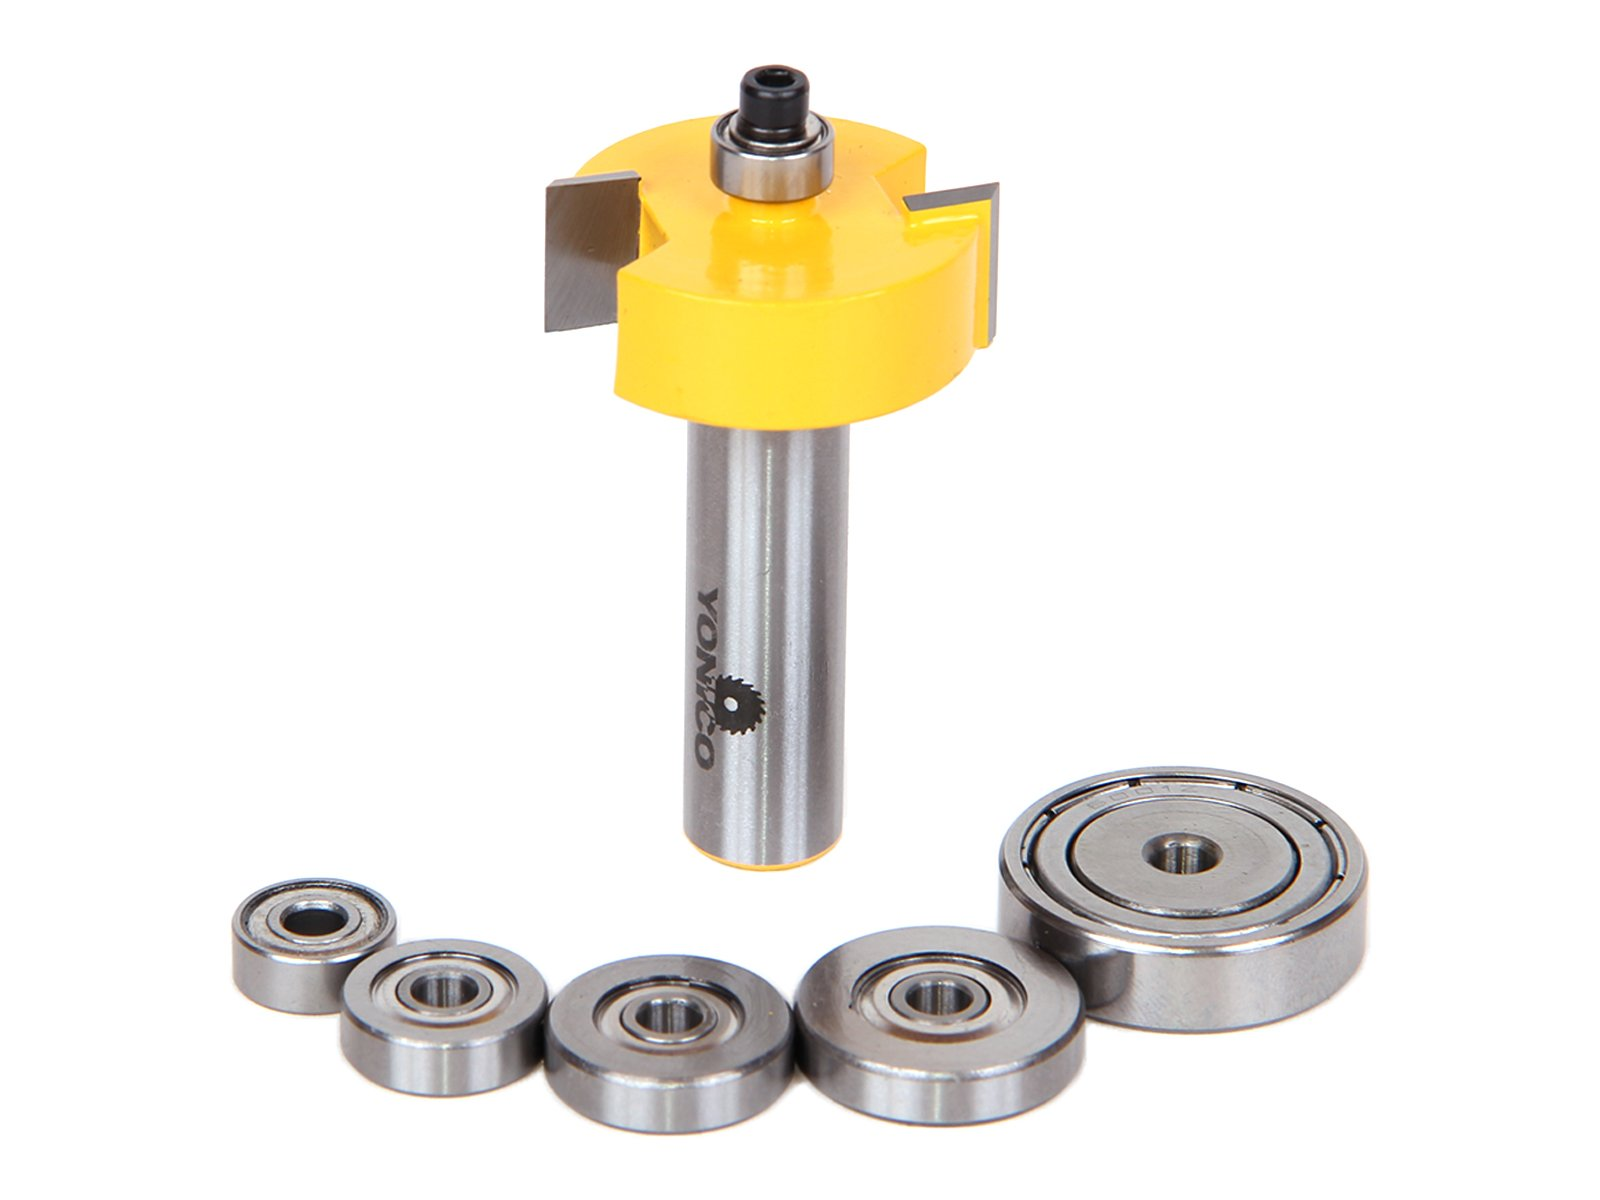 Yonico 14705 Rabbet Router Bit with 6 Bearings Set 1/2-Inch Shank